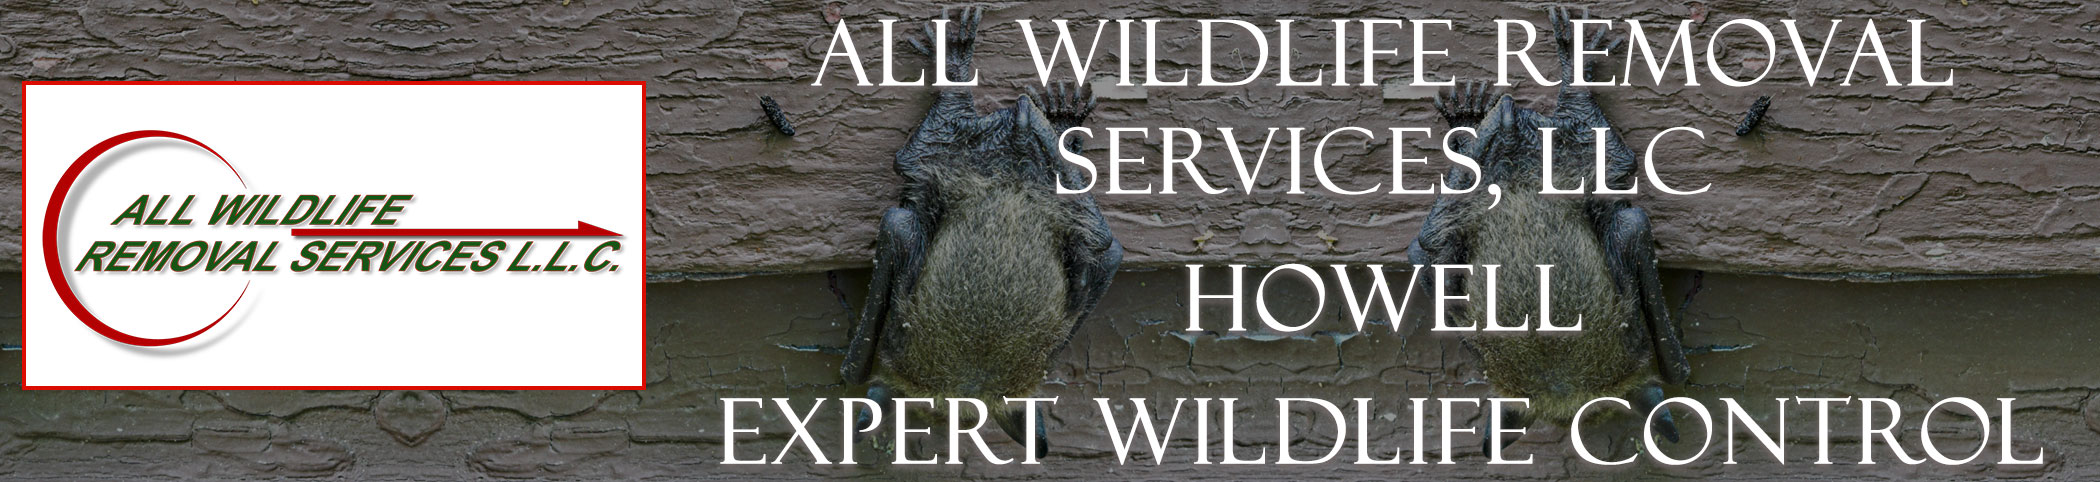 all-wildlife-removal-services-howell-new-jersey-header